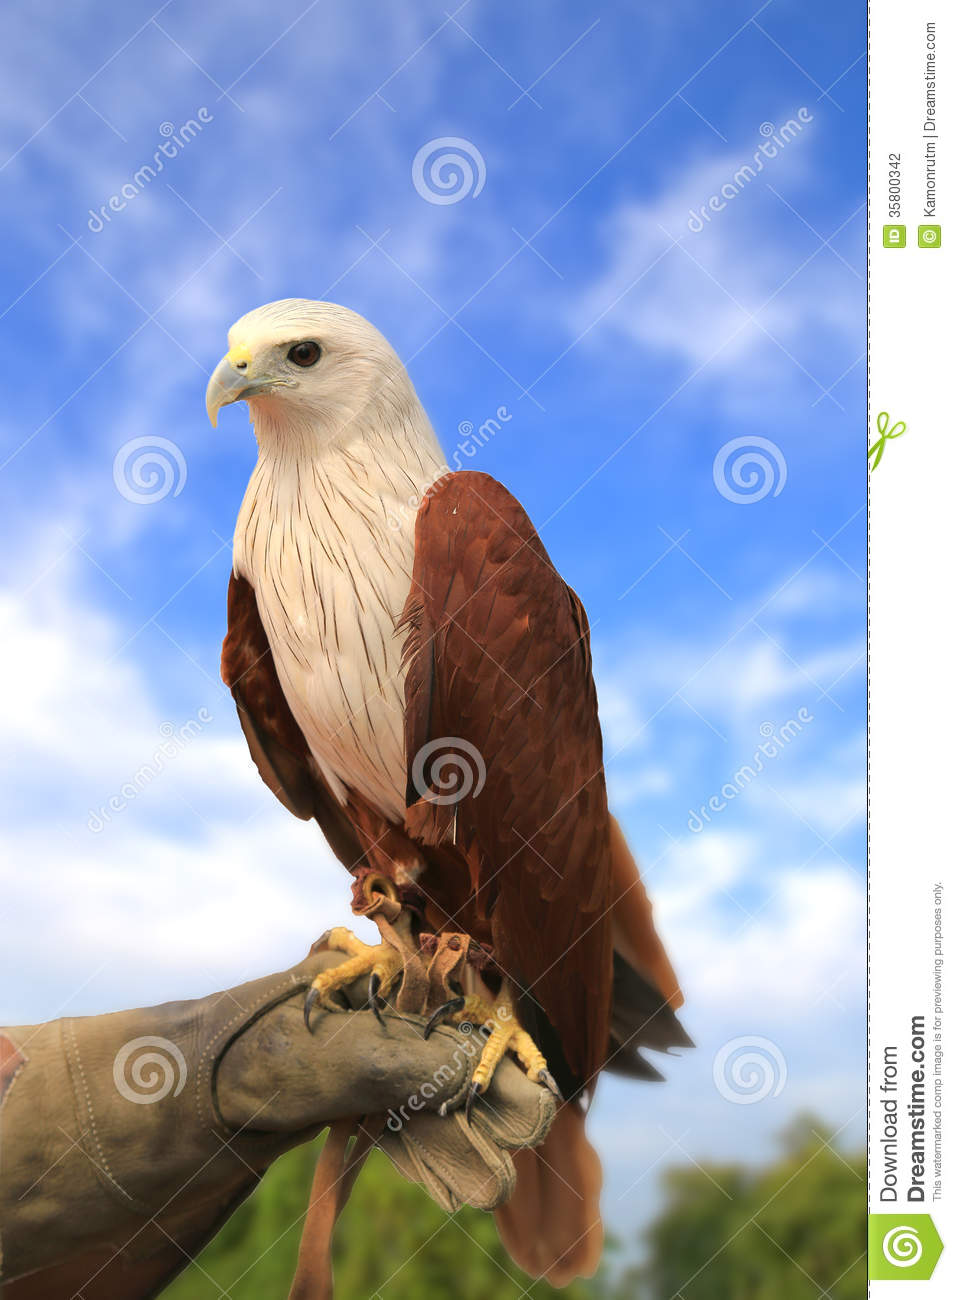 Red-backed Sea-eagle clipart #20, Download drawings